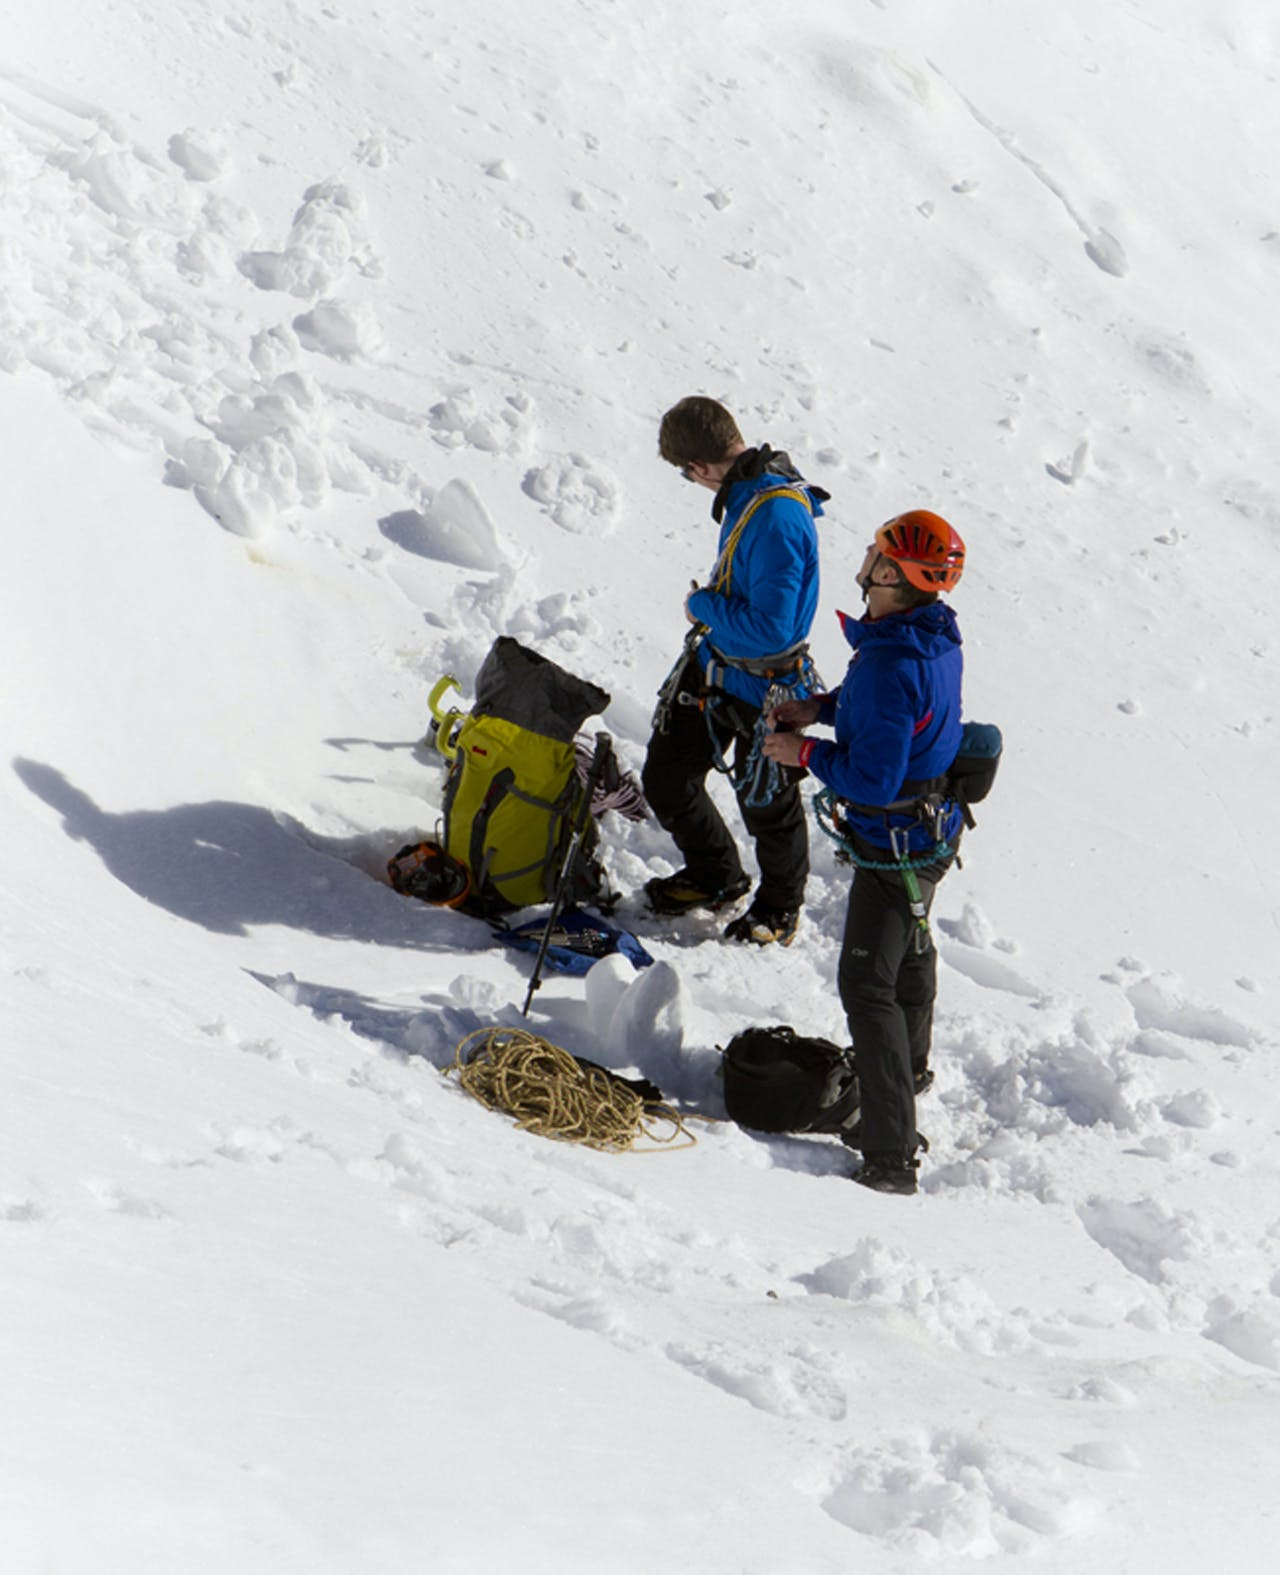 Jamie Vinton-Boot and Paul Hersey gear up at the base of Honey Badger. Photo: Paul Hersey